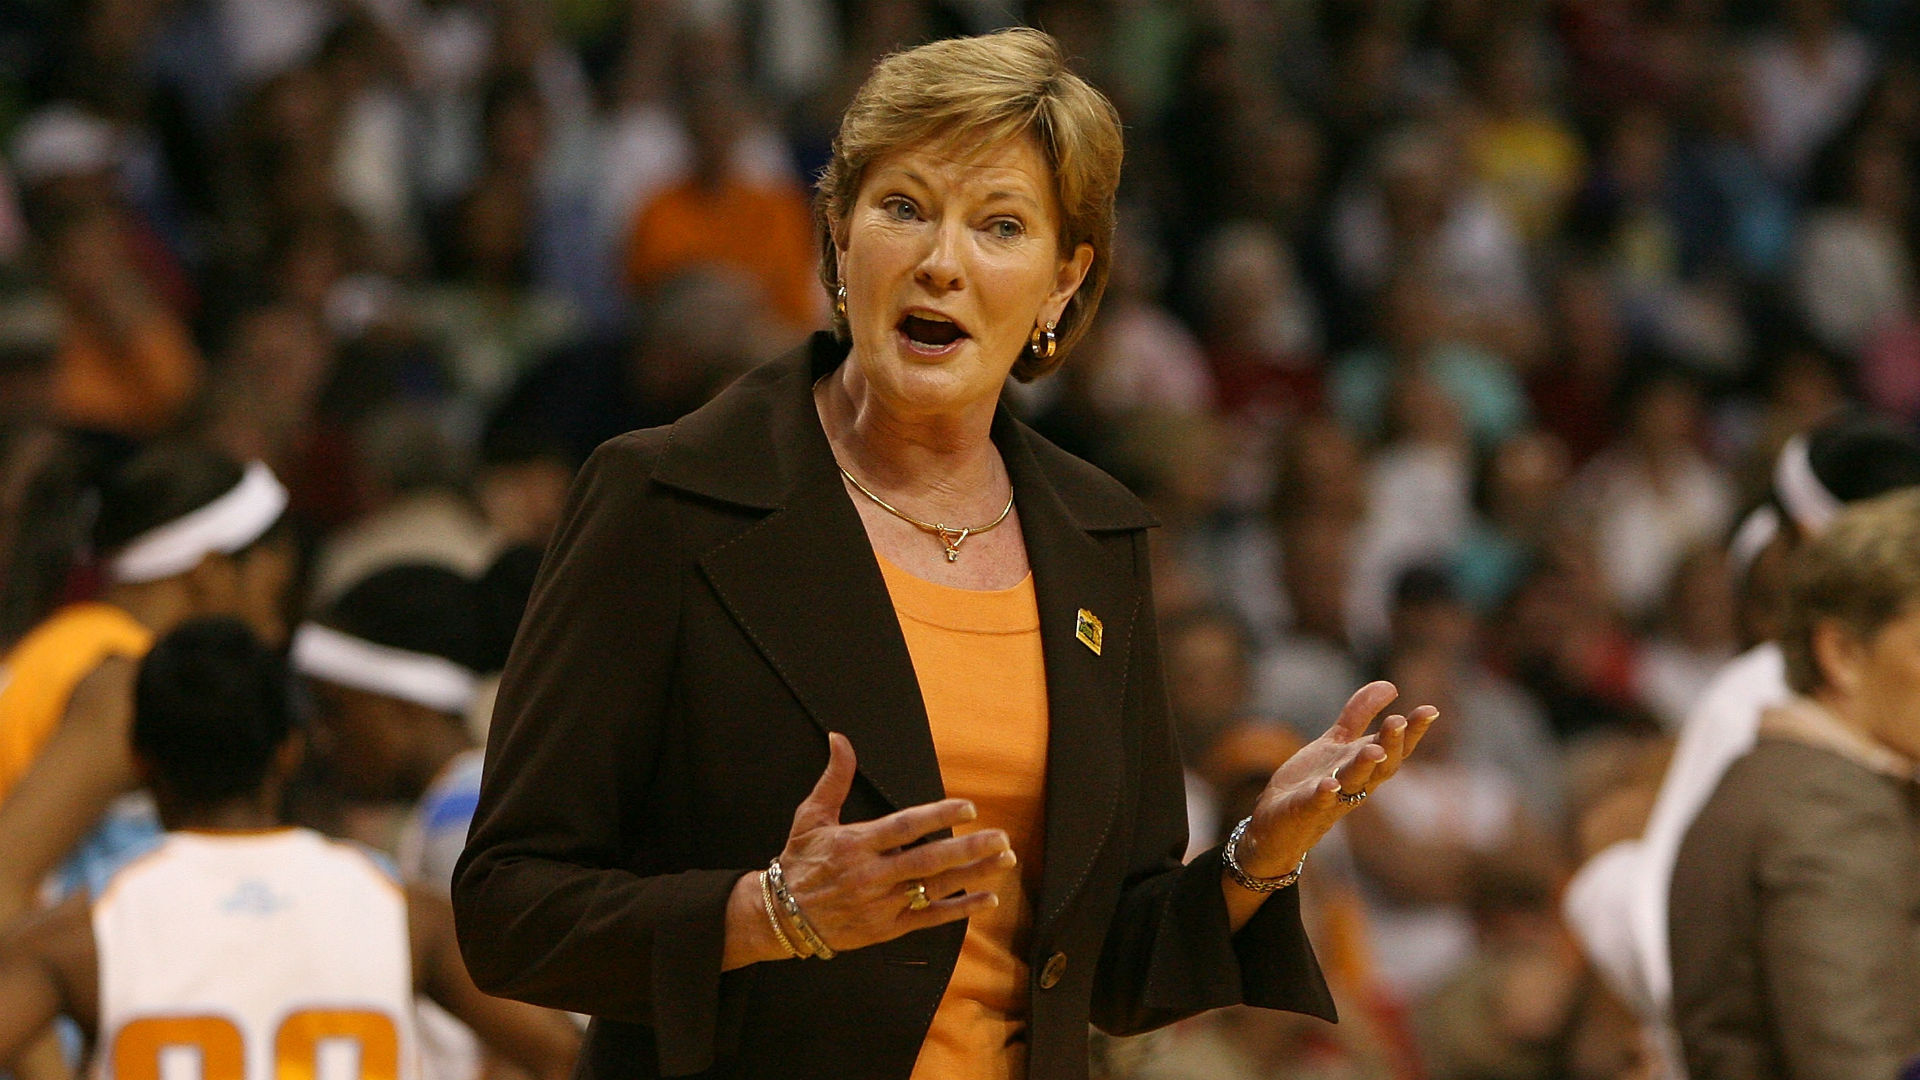 pat summitt Pat summitt touched the lives of many (1:45) bruce pearl, kara lawson, peyton manning, kim mulkey, trey wingo and mechelle voepel share their thoughts on the life and career of hall of fame coach.